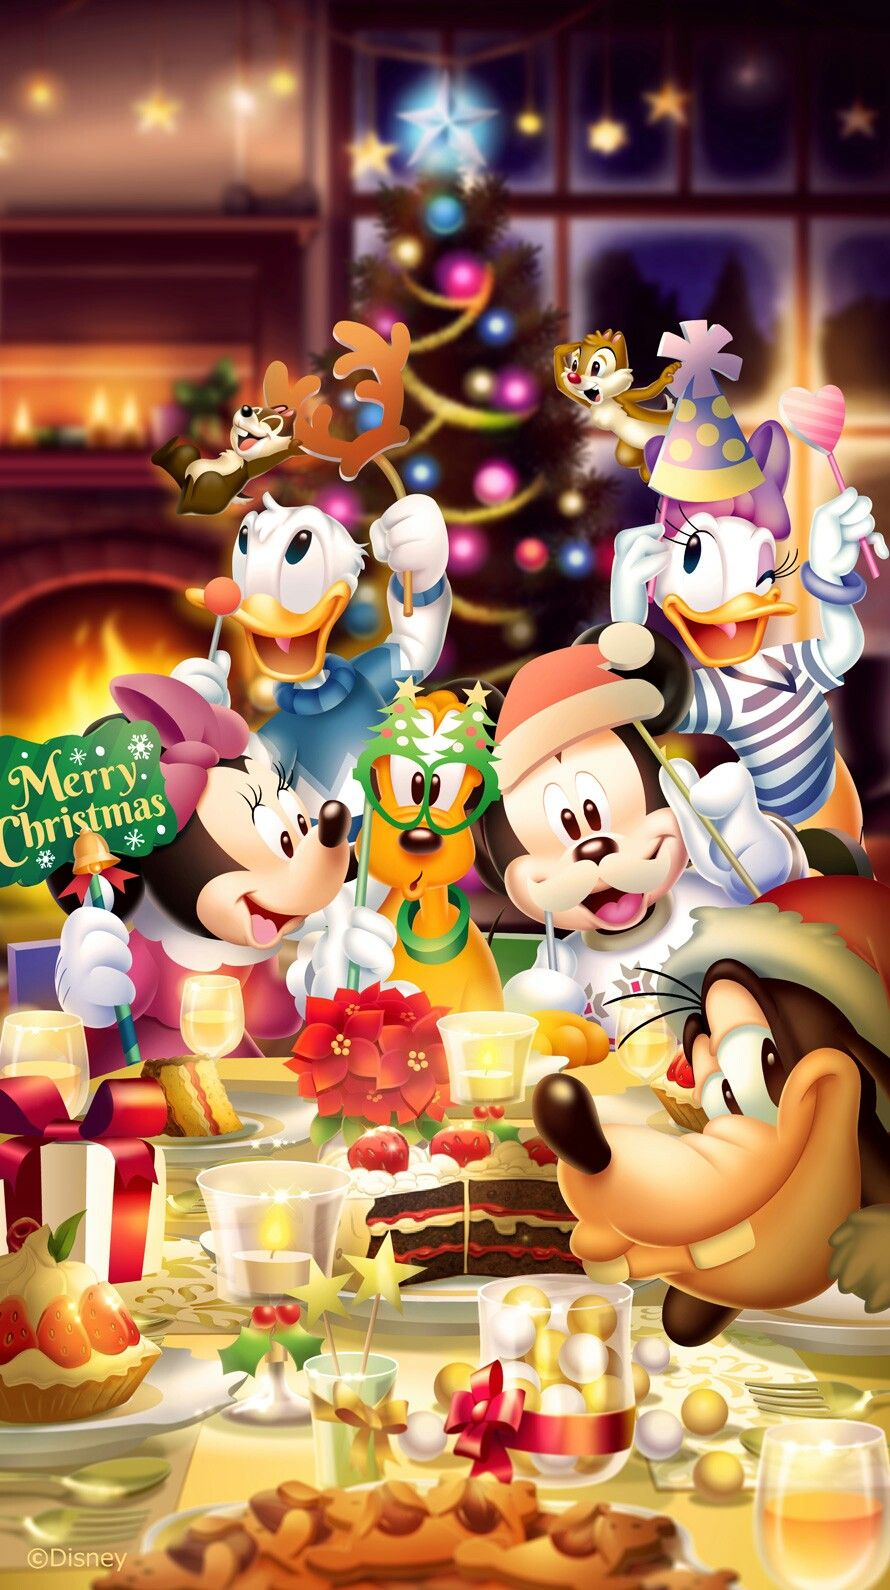 Mickey Mouse Christmas Wallpaper Iphone 890x1590 Download Hd Wallpaper Wallpapertip